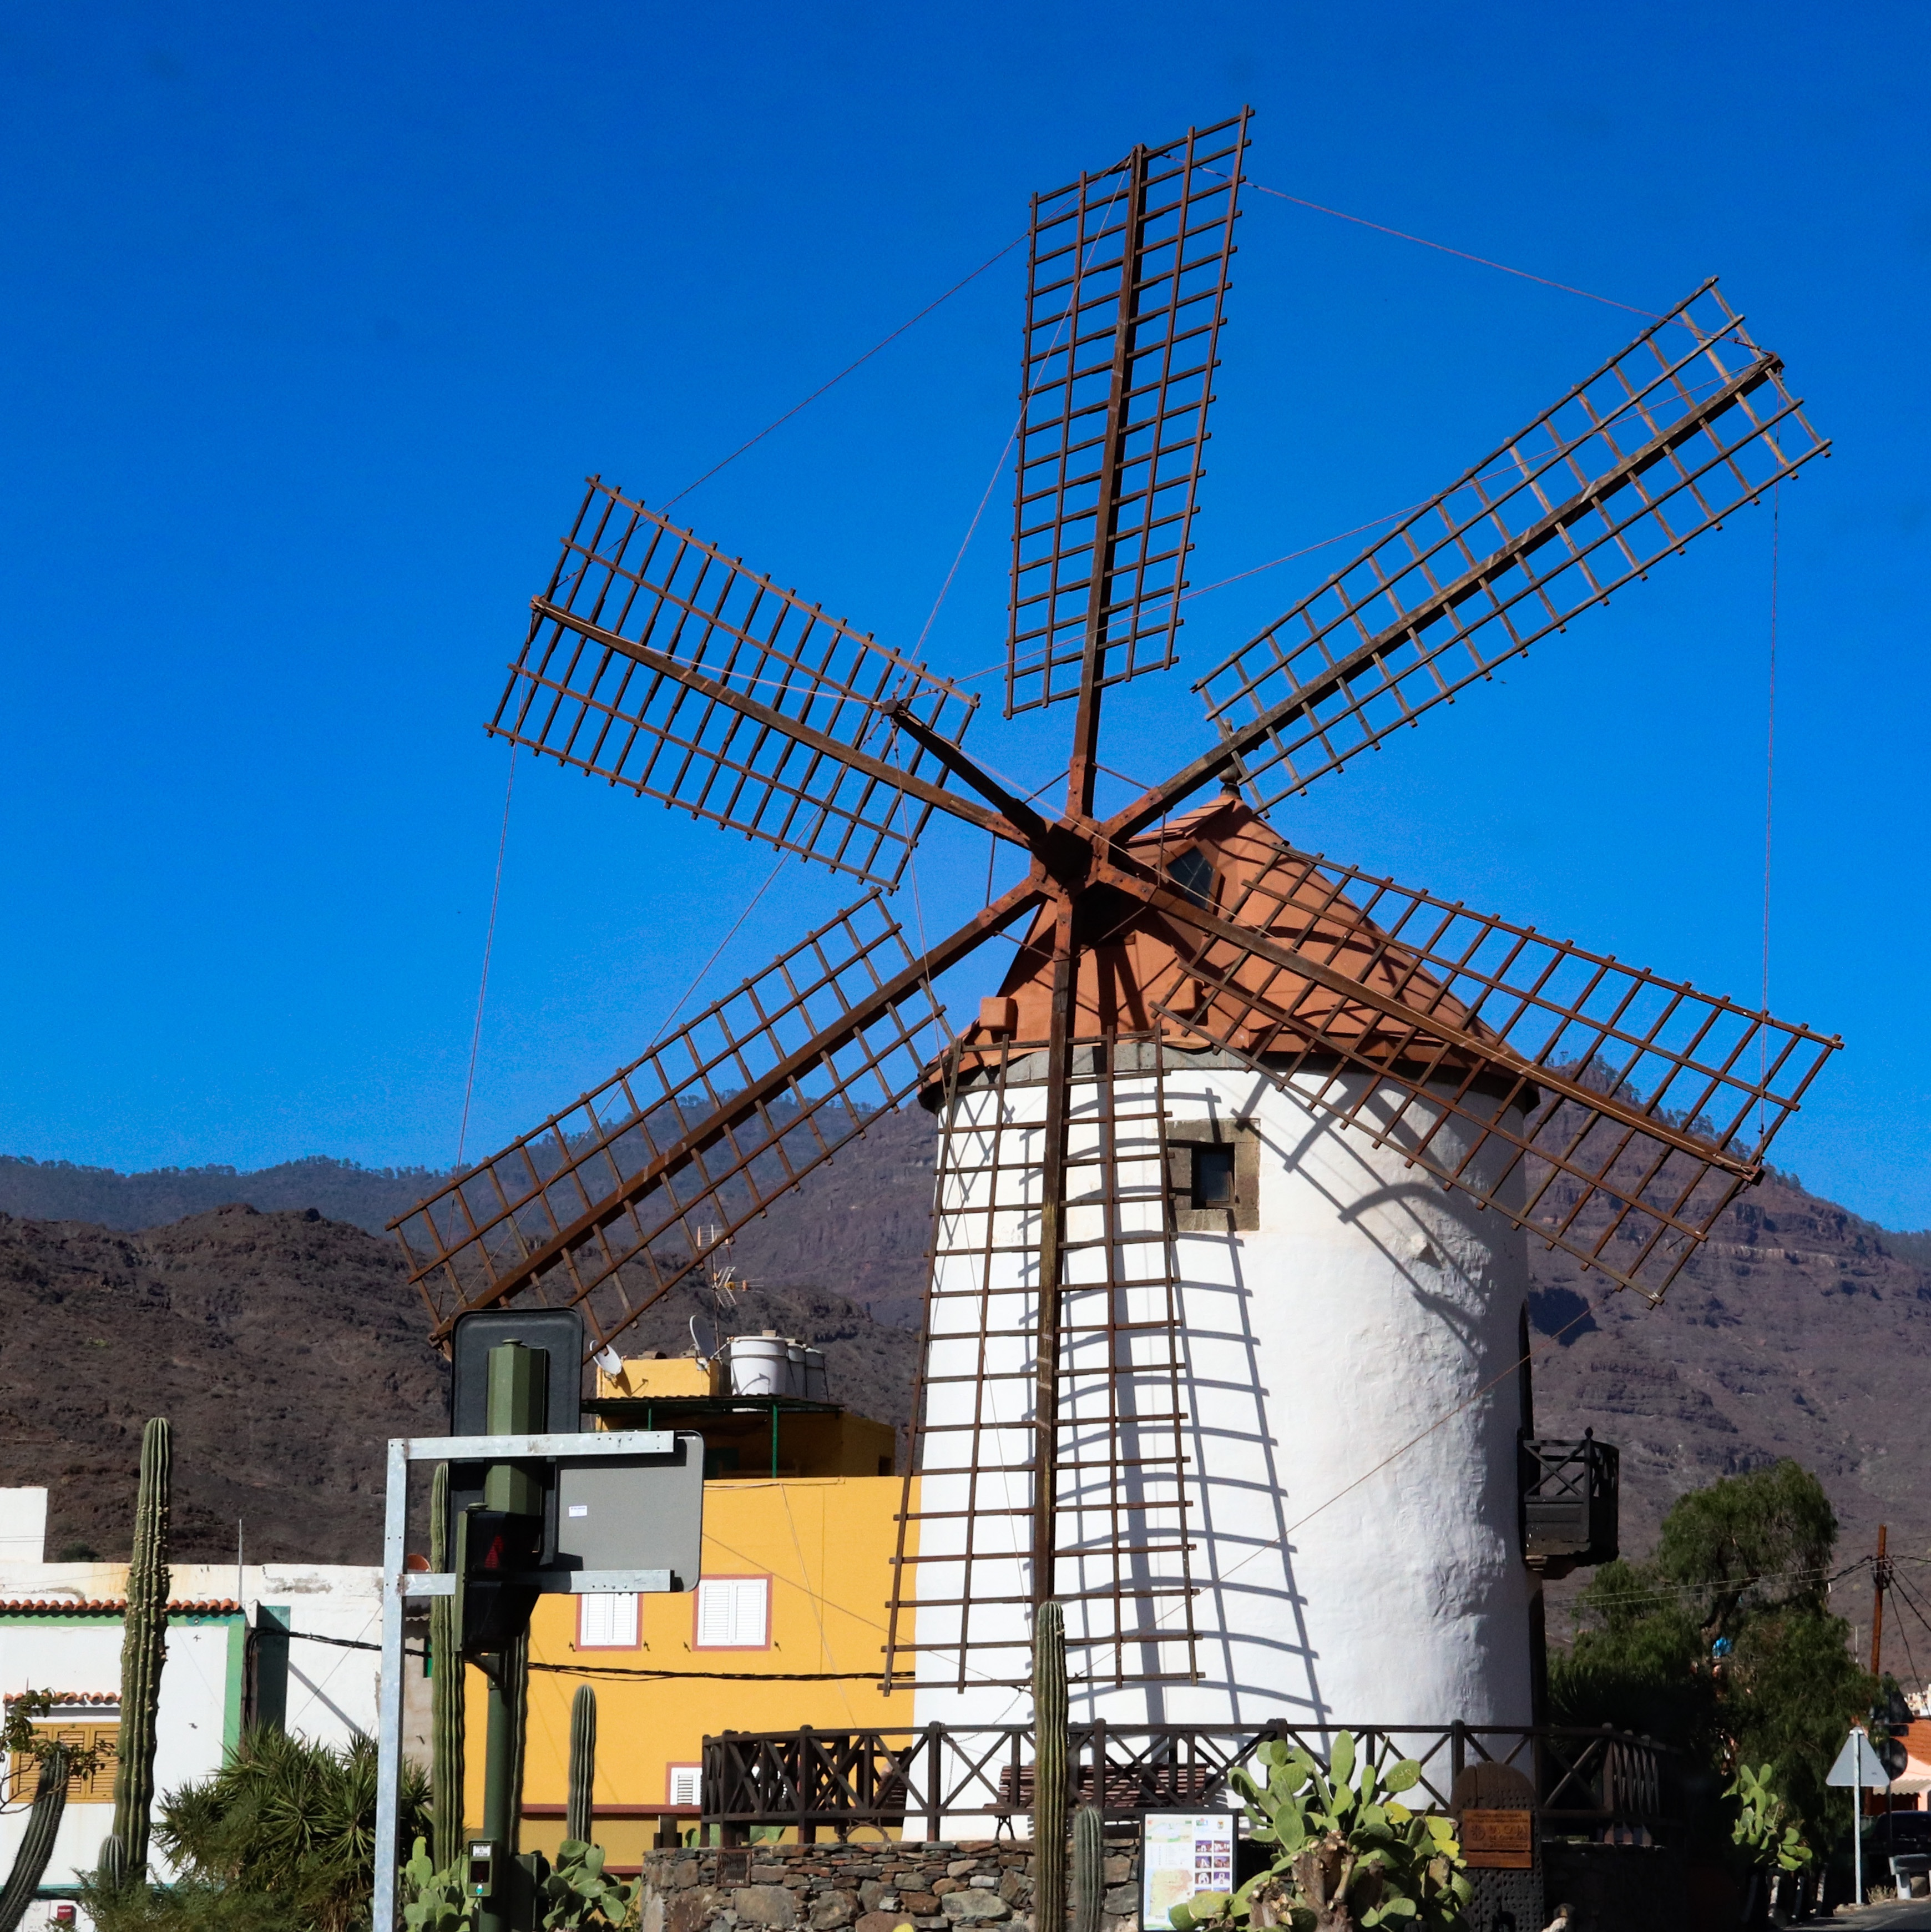 A traditional canarian windmill on the outskirts of Mogan.